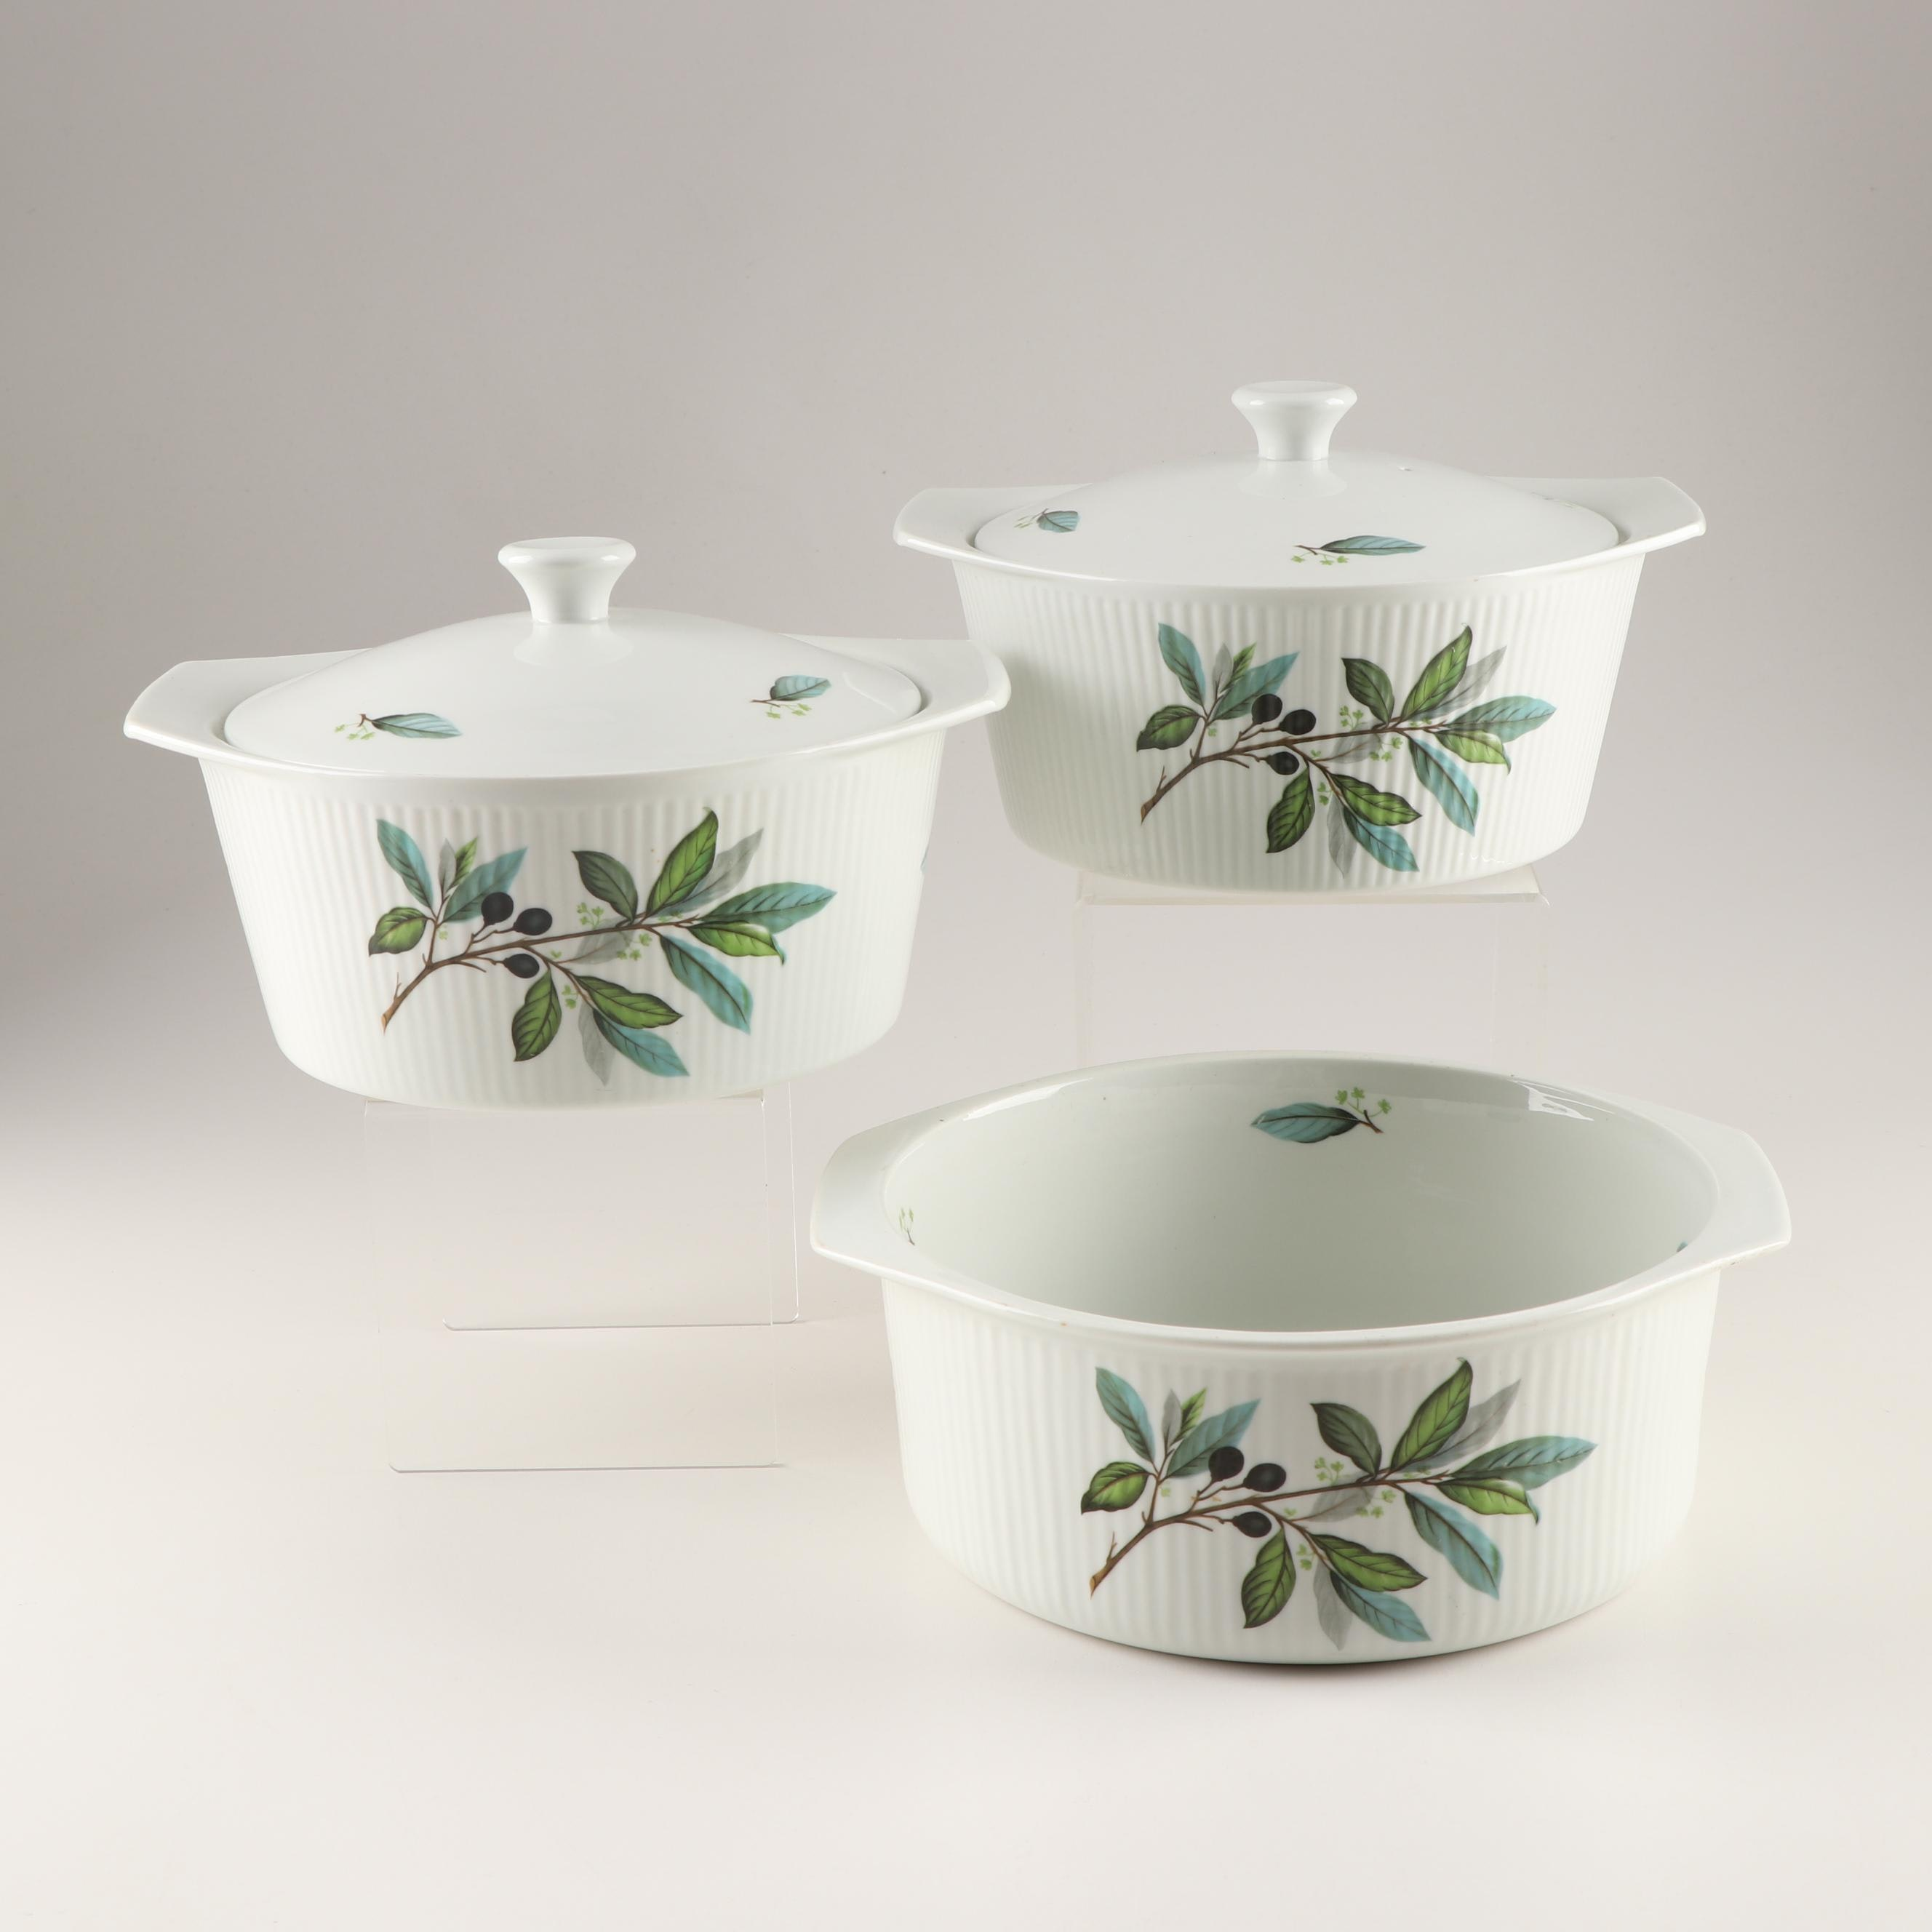 Porcelaine A Feu Covered Casserole and Souffle Dishes